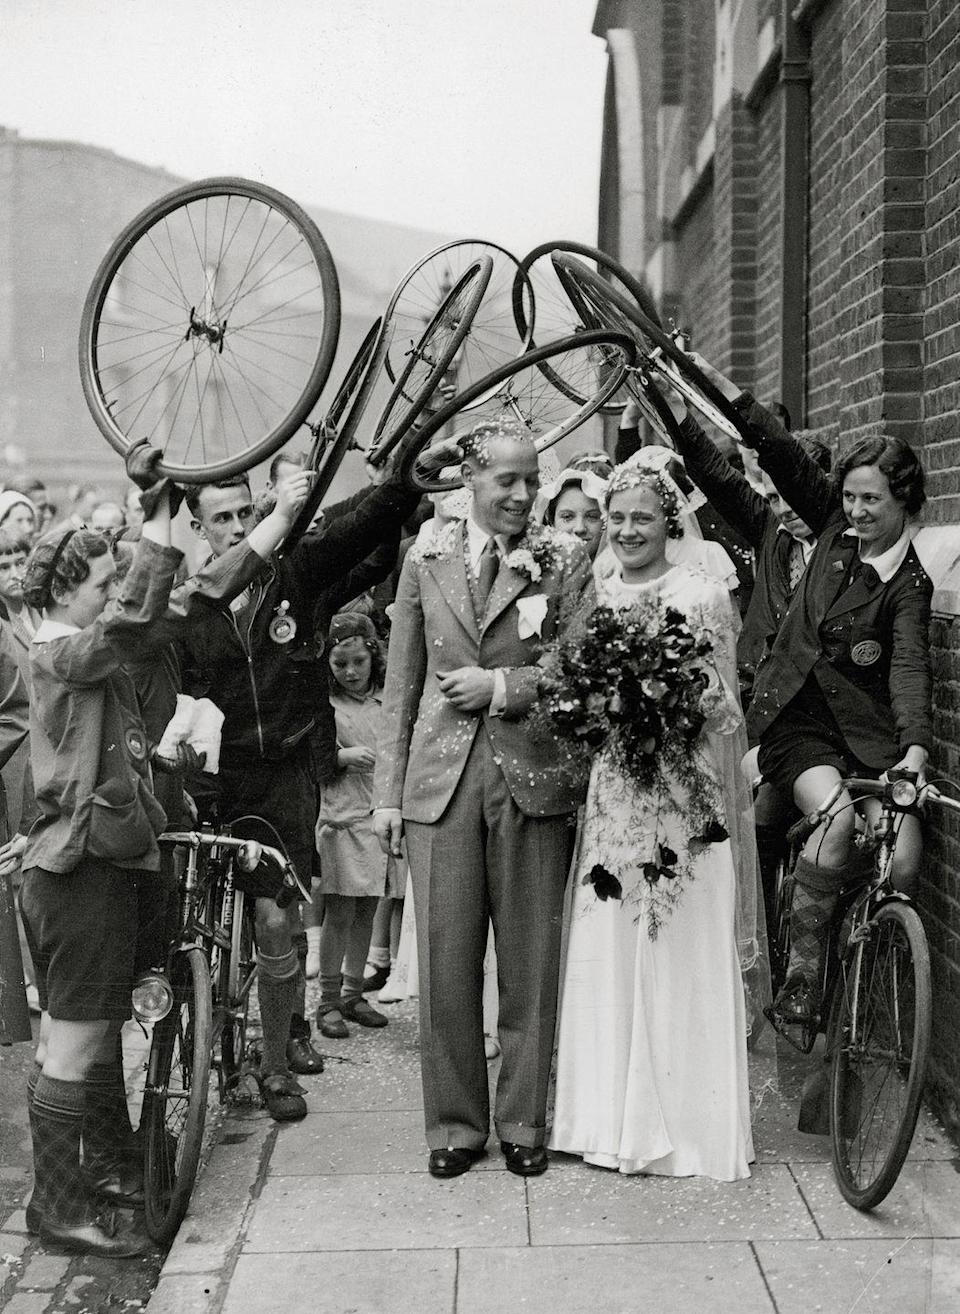 """<p>An arch fashioned by bicycles is very appropriate for this couple. After all, the groom was a professional cyclist. </p><p><a href=""""http://www.goodhousekeeping.com/life/relationships/news/a41070/wedding-photographers-share-signs-of-divorce/"""" rel=""""nofollow noopener"""" target=""""_blank"""" data-ylk=""""slk:10 confessions of wedding photographers »"""" class=""""link rapid-noclick-resp""""><em>10 confessions of wedding photographers »</em></a></p>"""